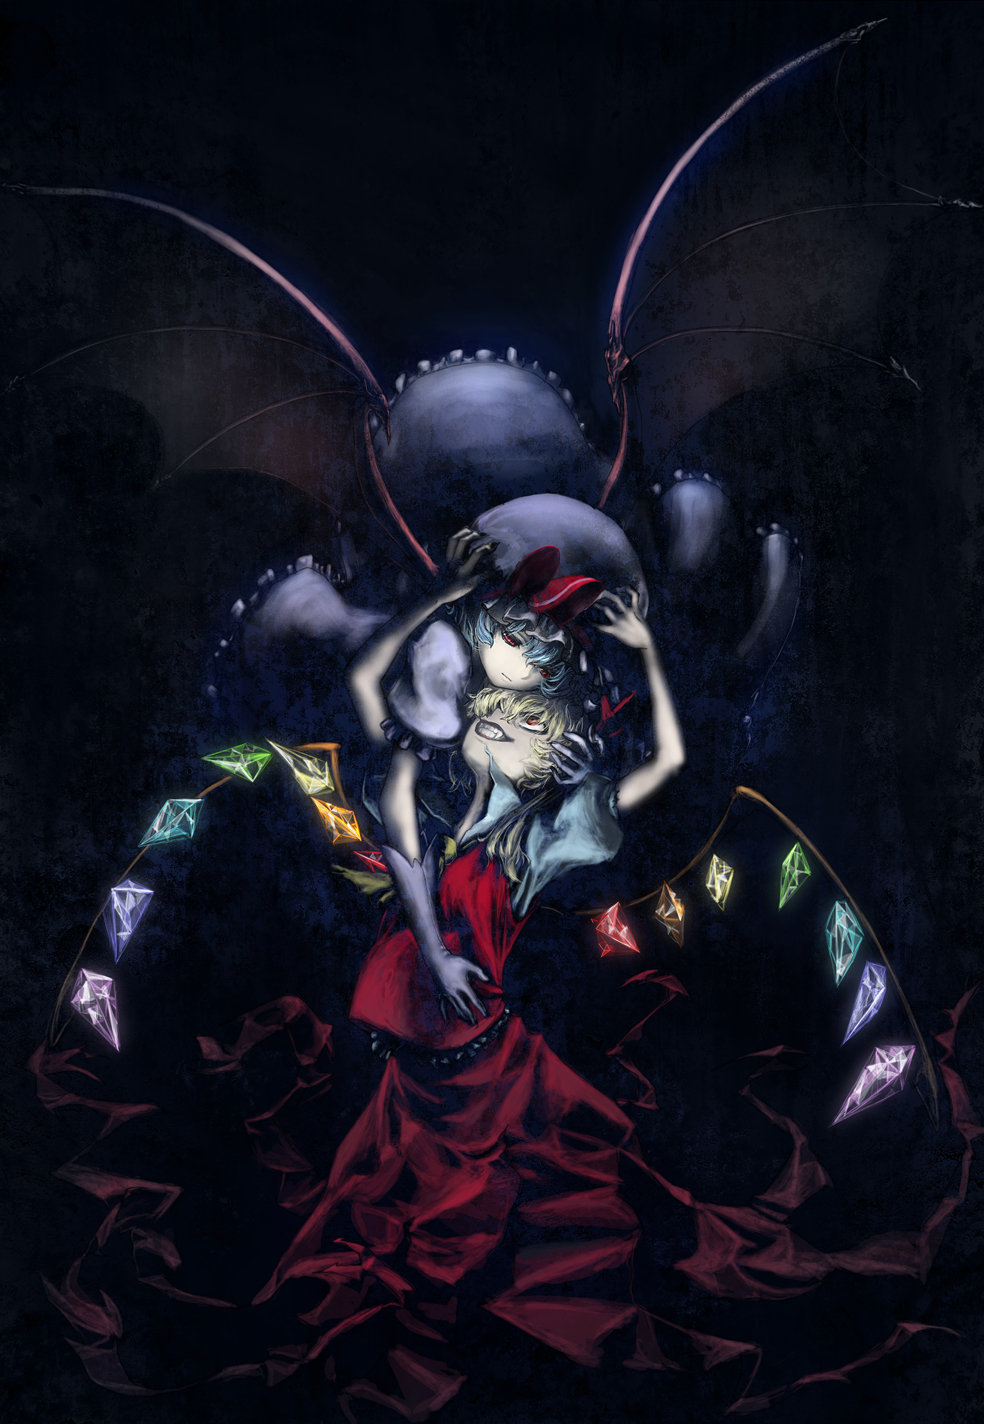 ascot bad_id bat_wings blonde_hair blue_hair crystal flandre_scarlet grin hat hat_ribbon highres kath multiple_girls puffy_sleeves red_eyes remilia_scarlet ribbon short_hair short_sleeves siblings sisters smile touhou wings